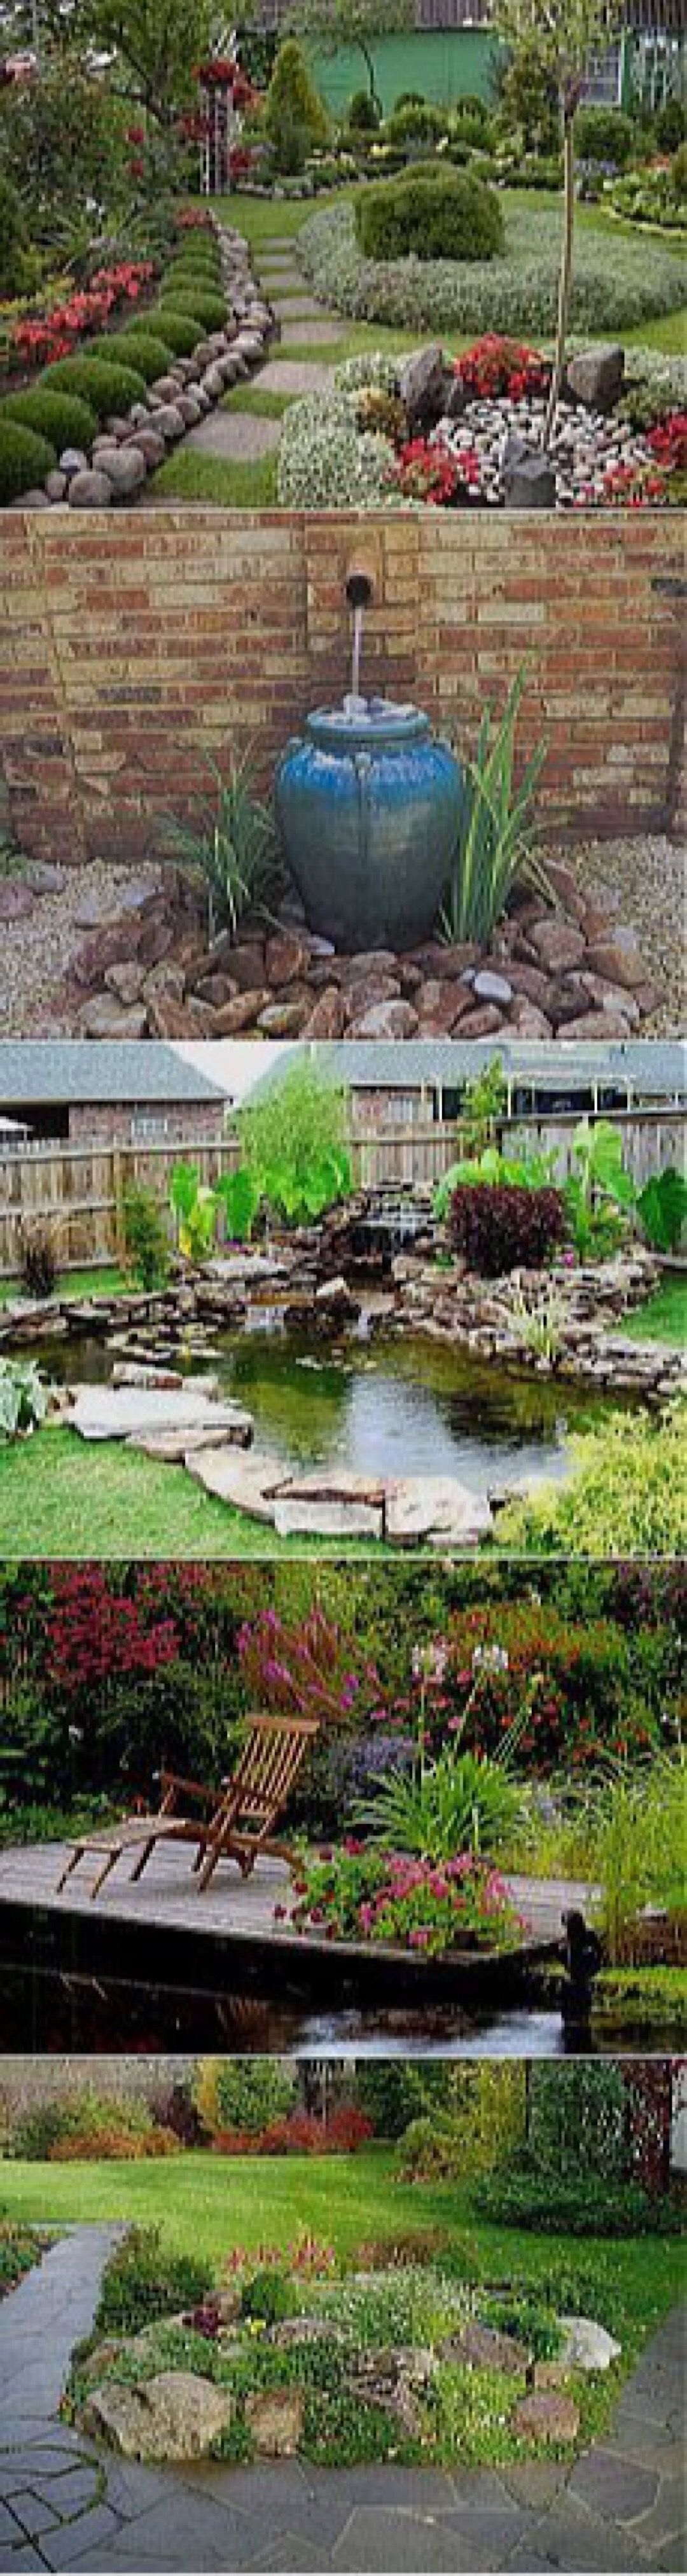 Backyard Landscaping Ideas Surf landscapes and